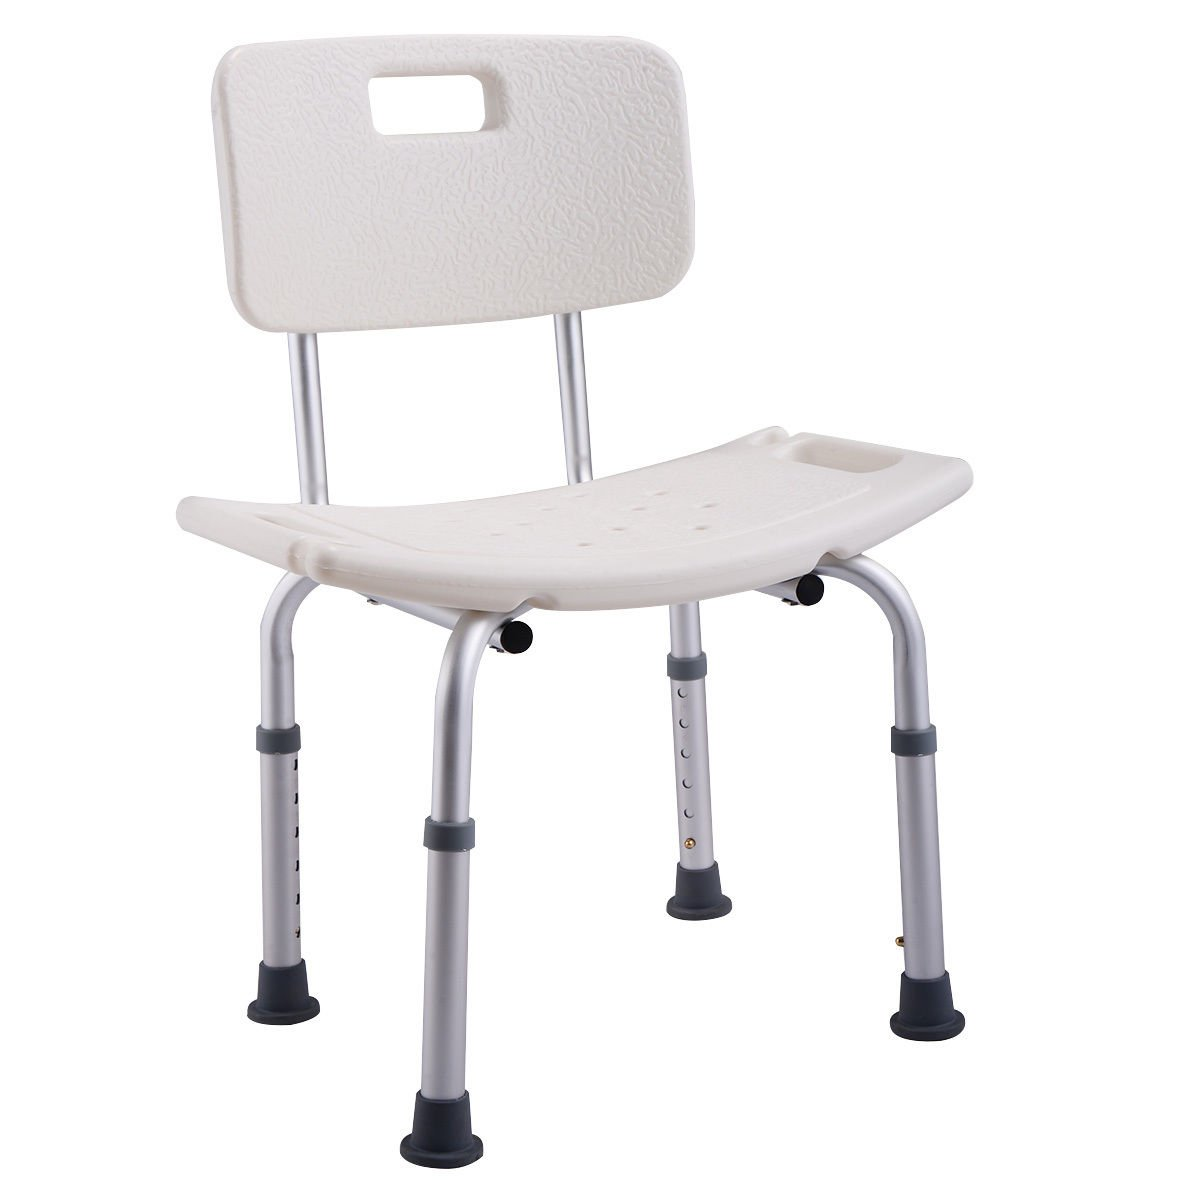 Goplus Medical Shower Bath Chair 6 Height Adjustable Bathtub Stool